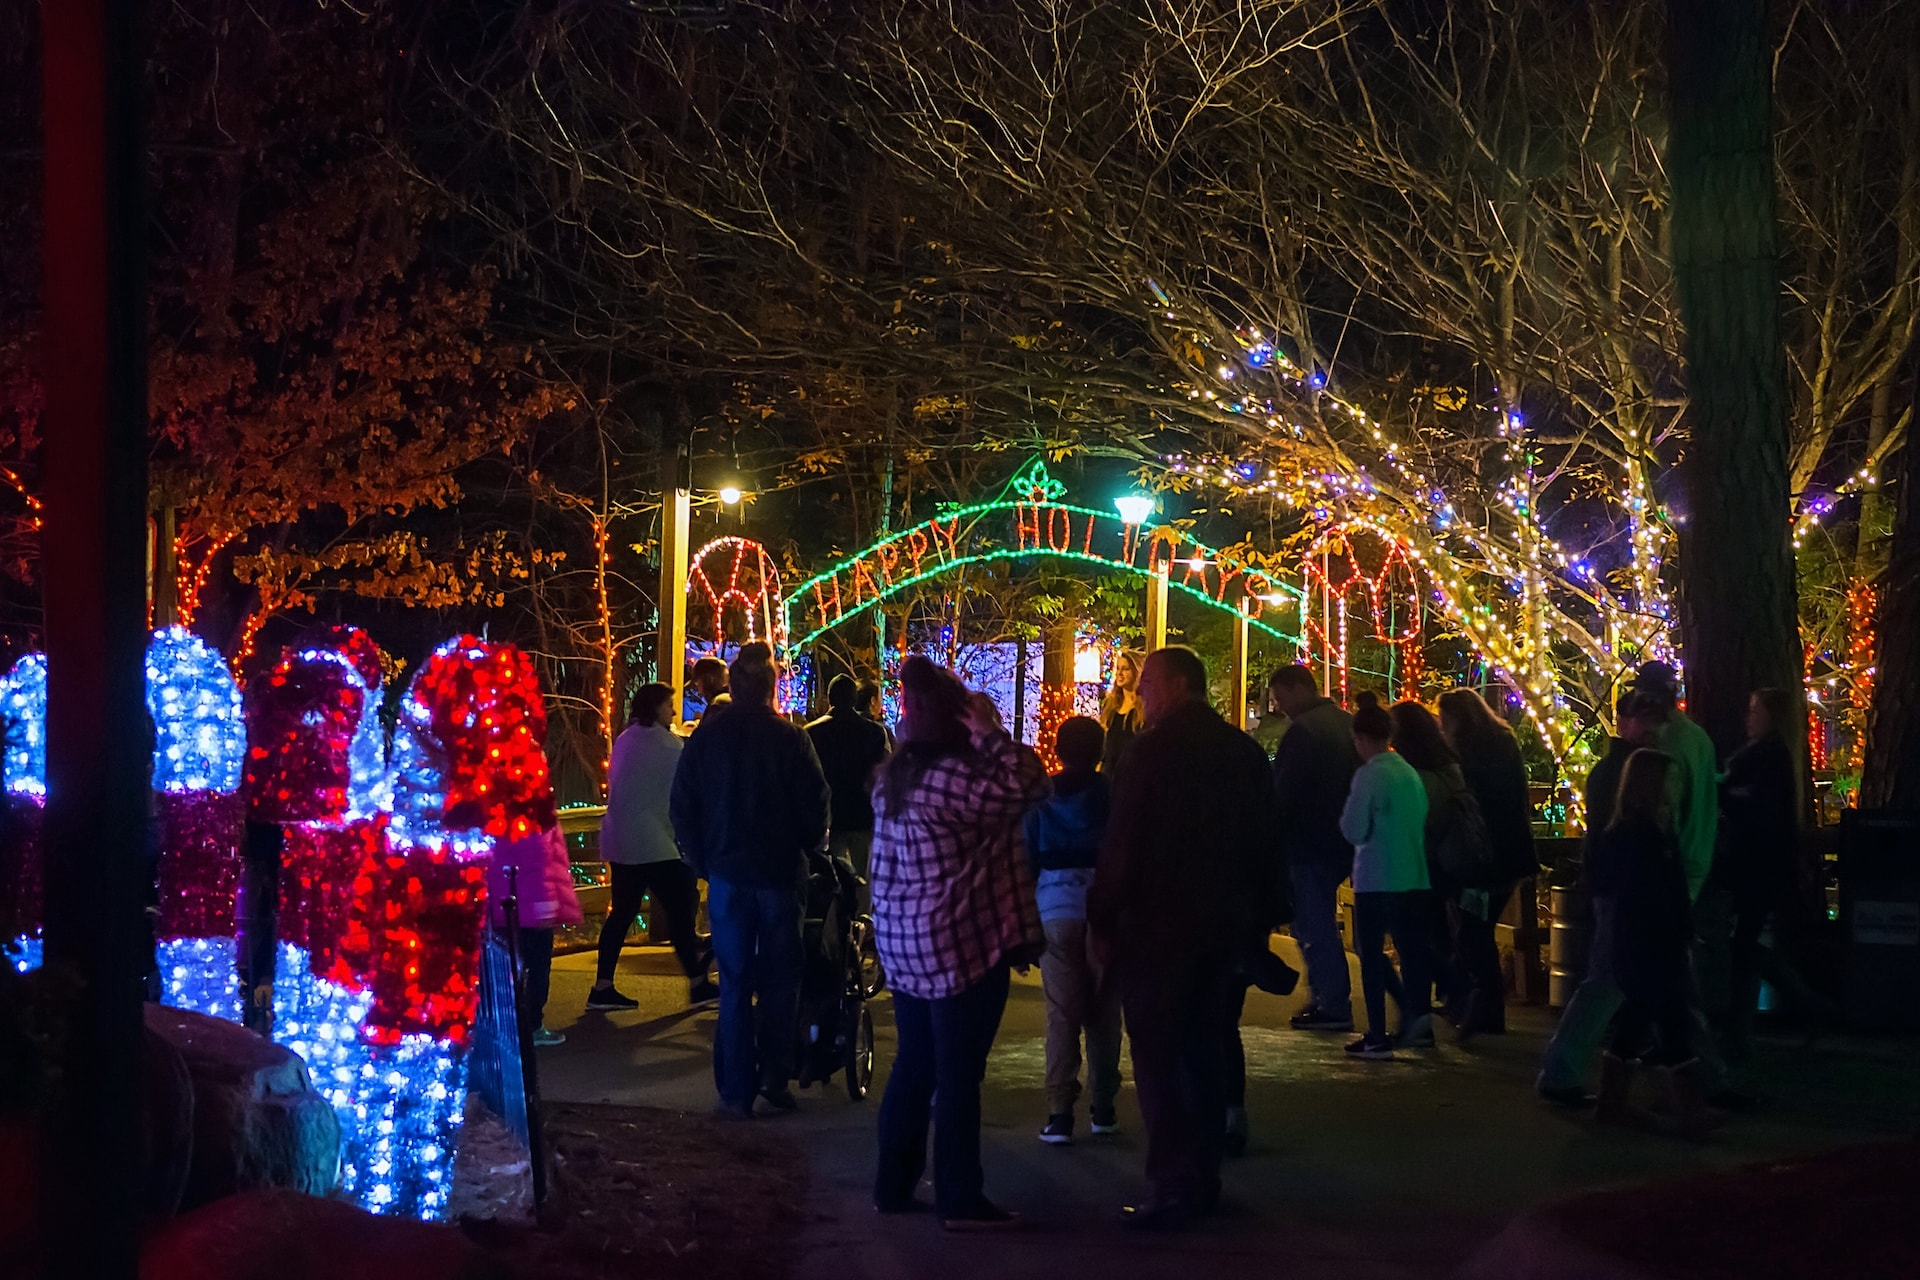 People enjoying the Lights Before Christmas at the Riverbanks Zoo, a unique Holiday Party Venue, in Columbia, South Carolina